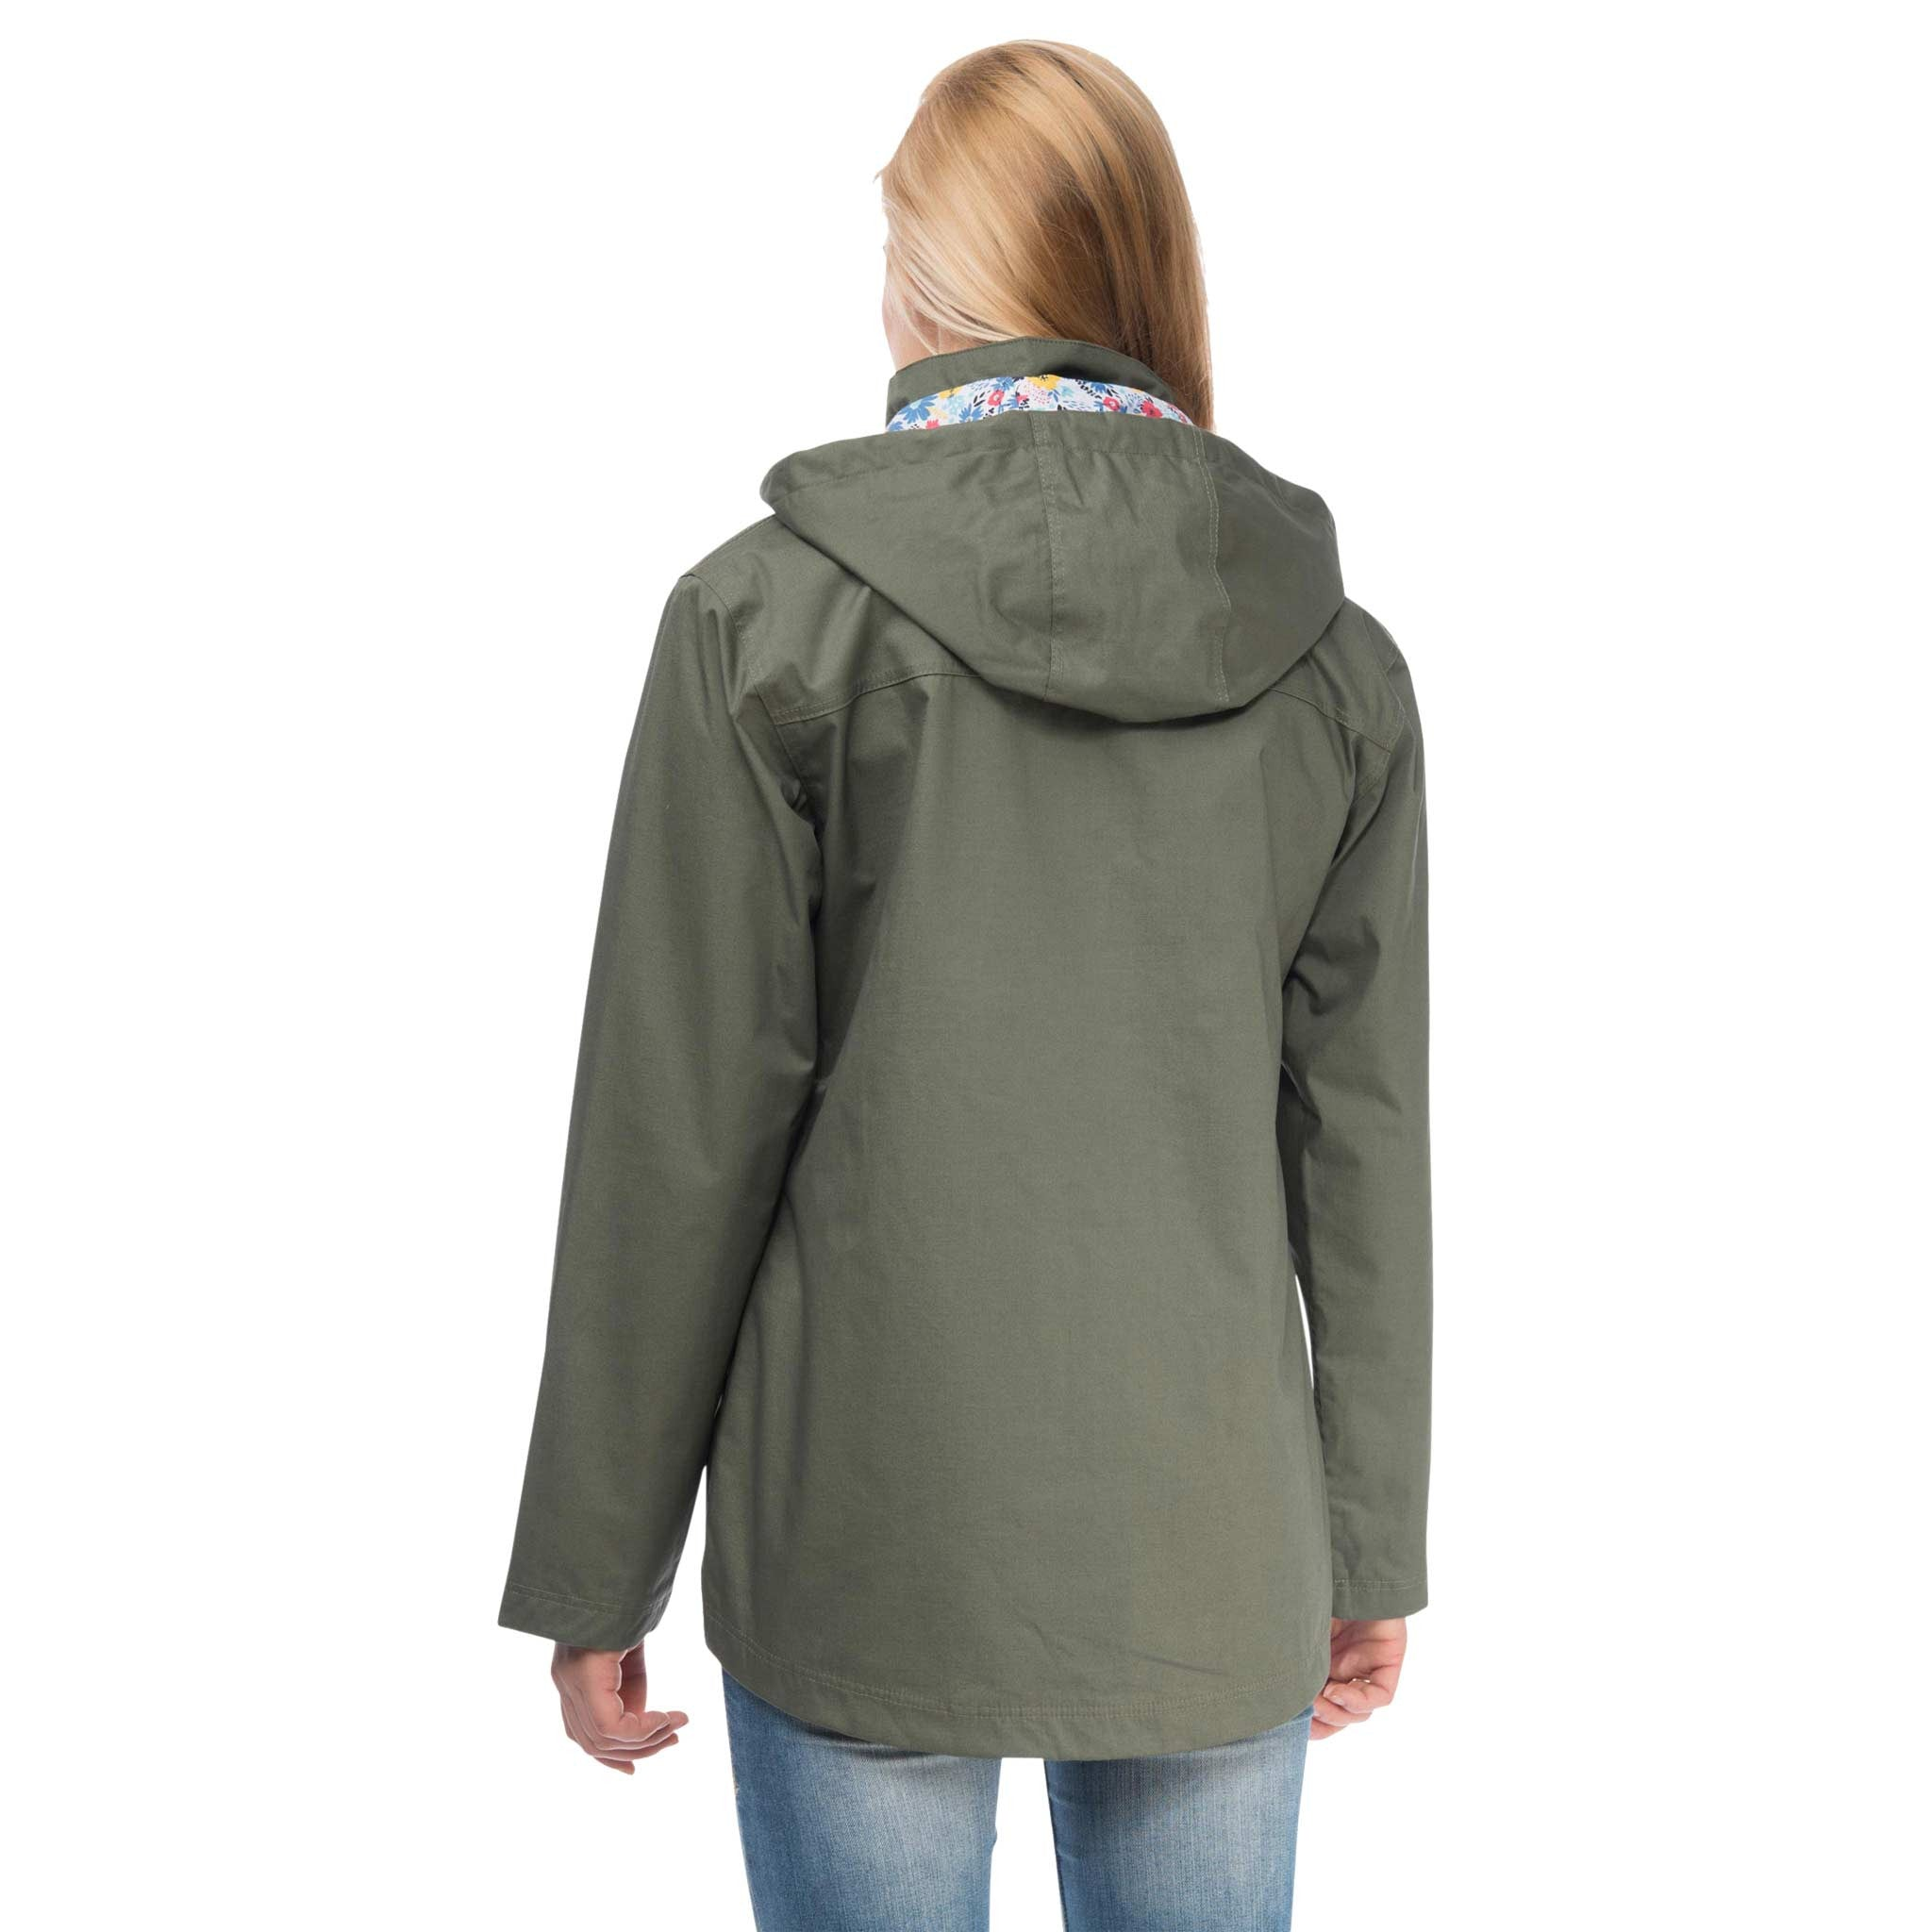 Romy Womens Waterproof Jacket with Cotton Outer in Willow Green, Modelled Back View | Lighthouse